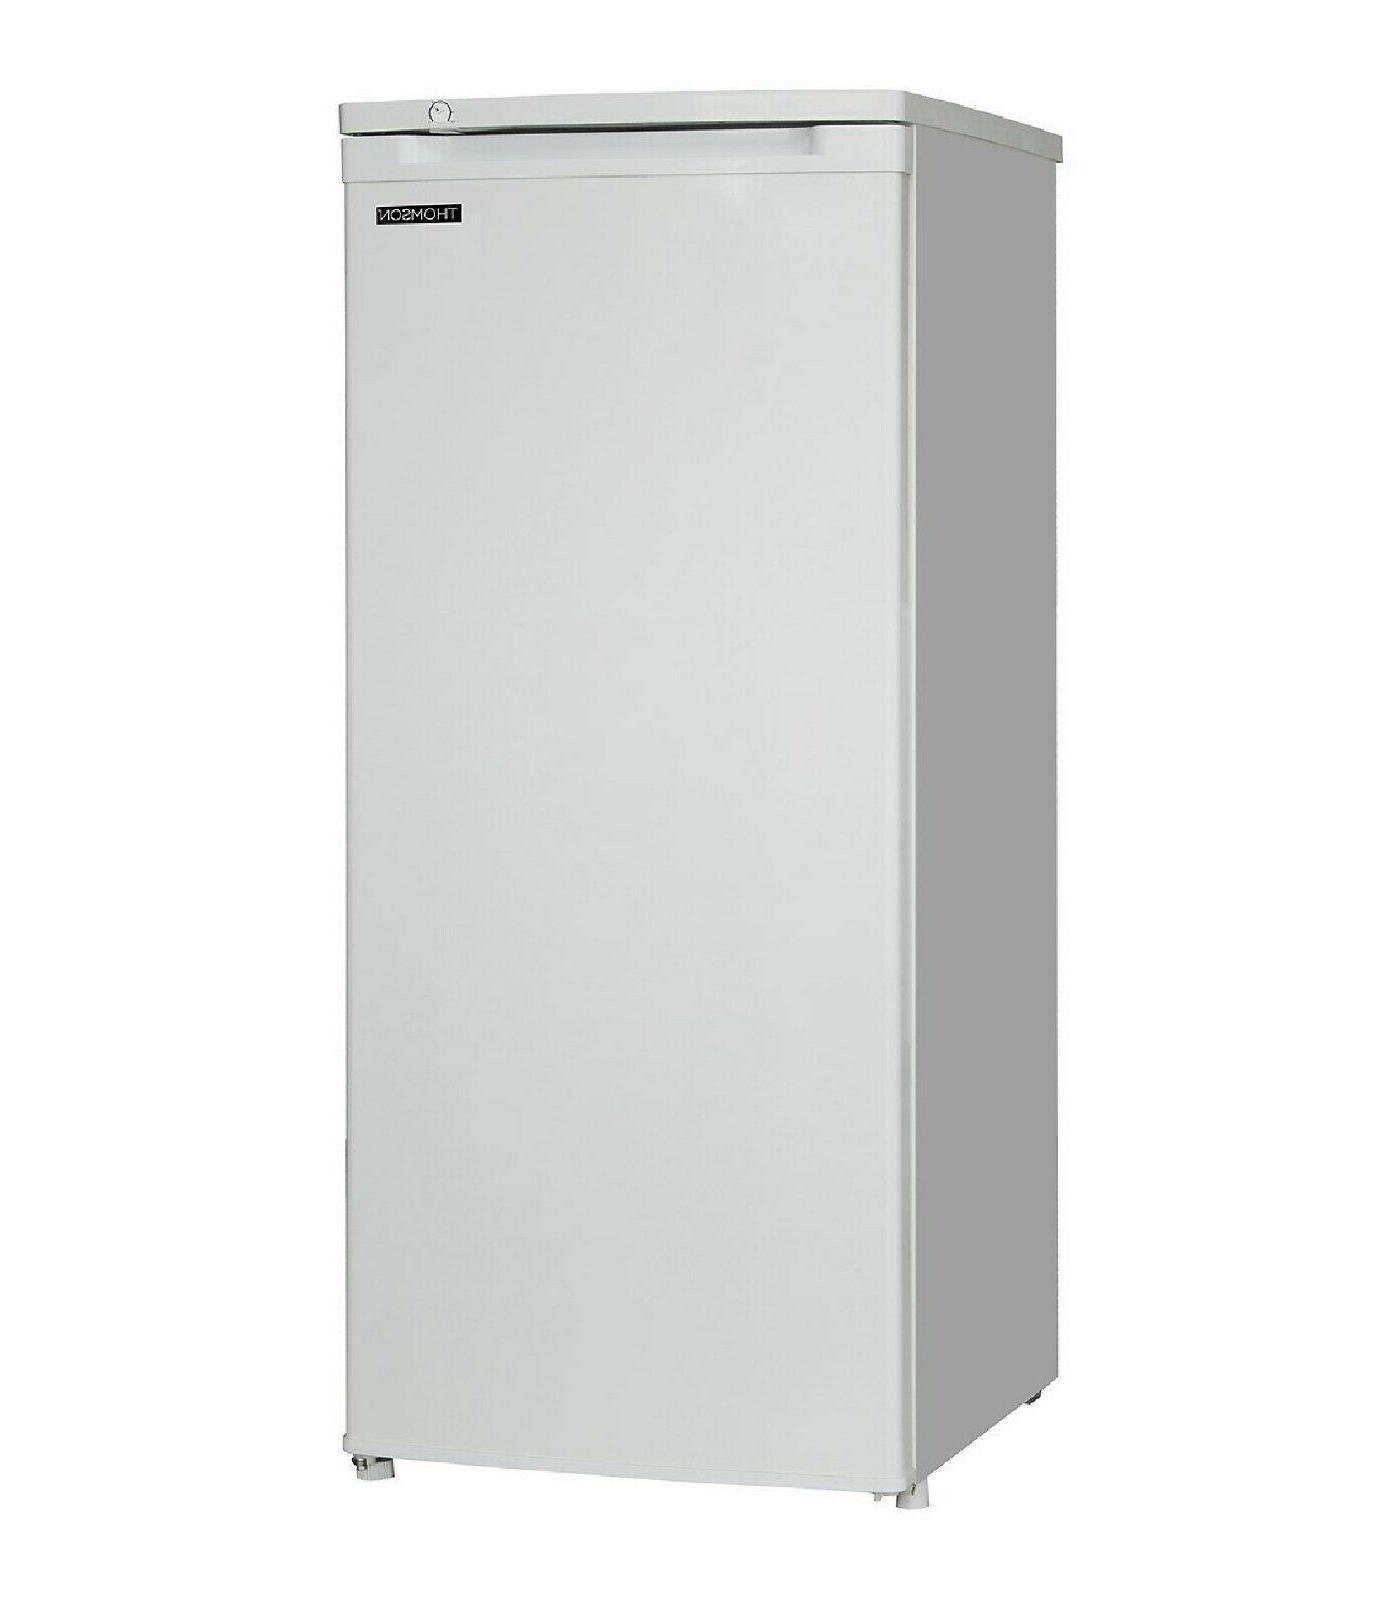 upright freezer 6 5 cu ft 55